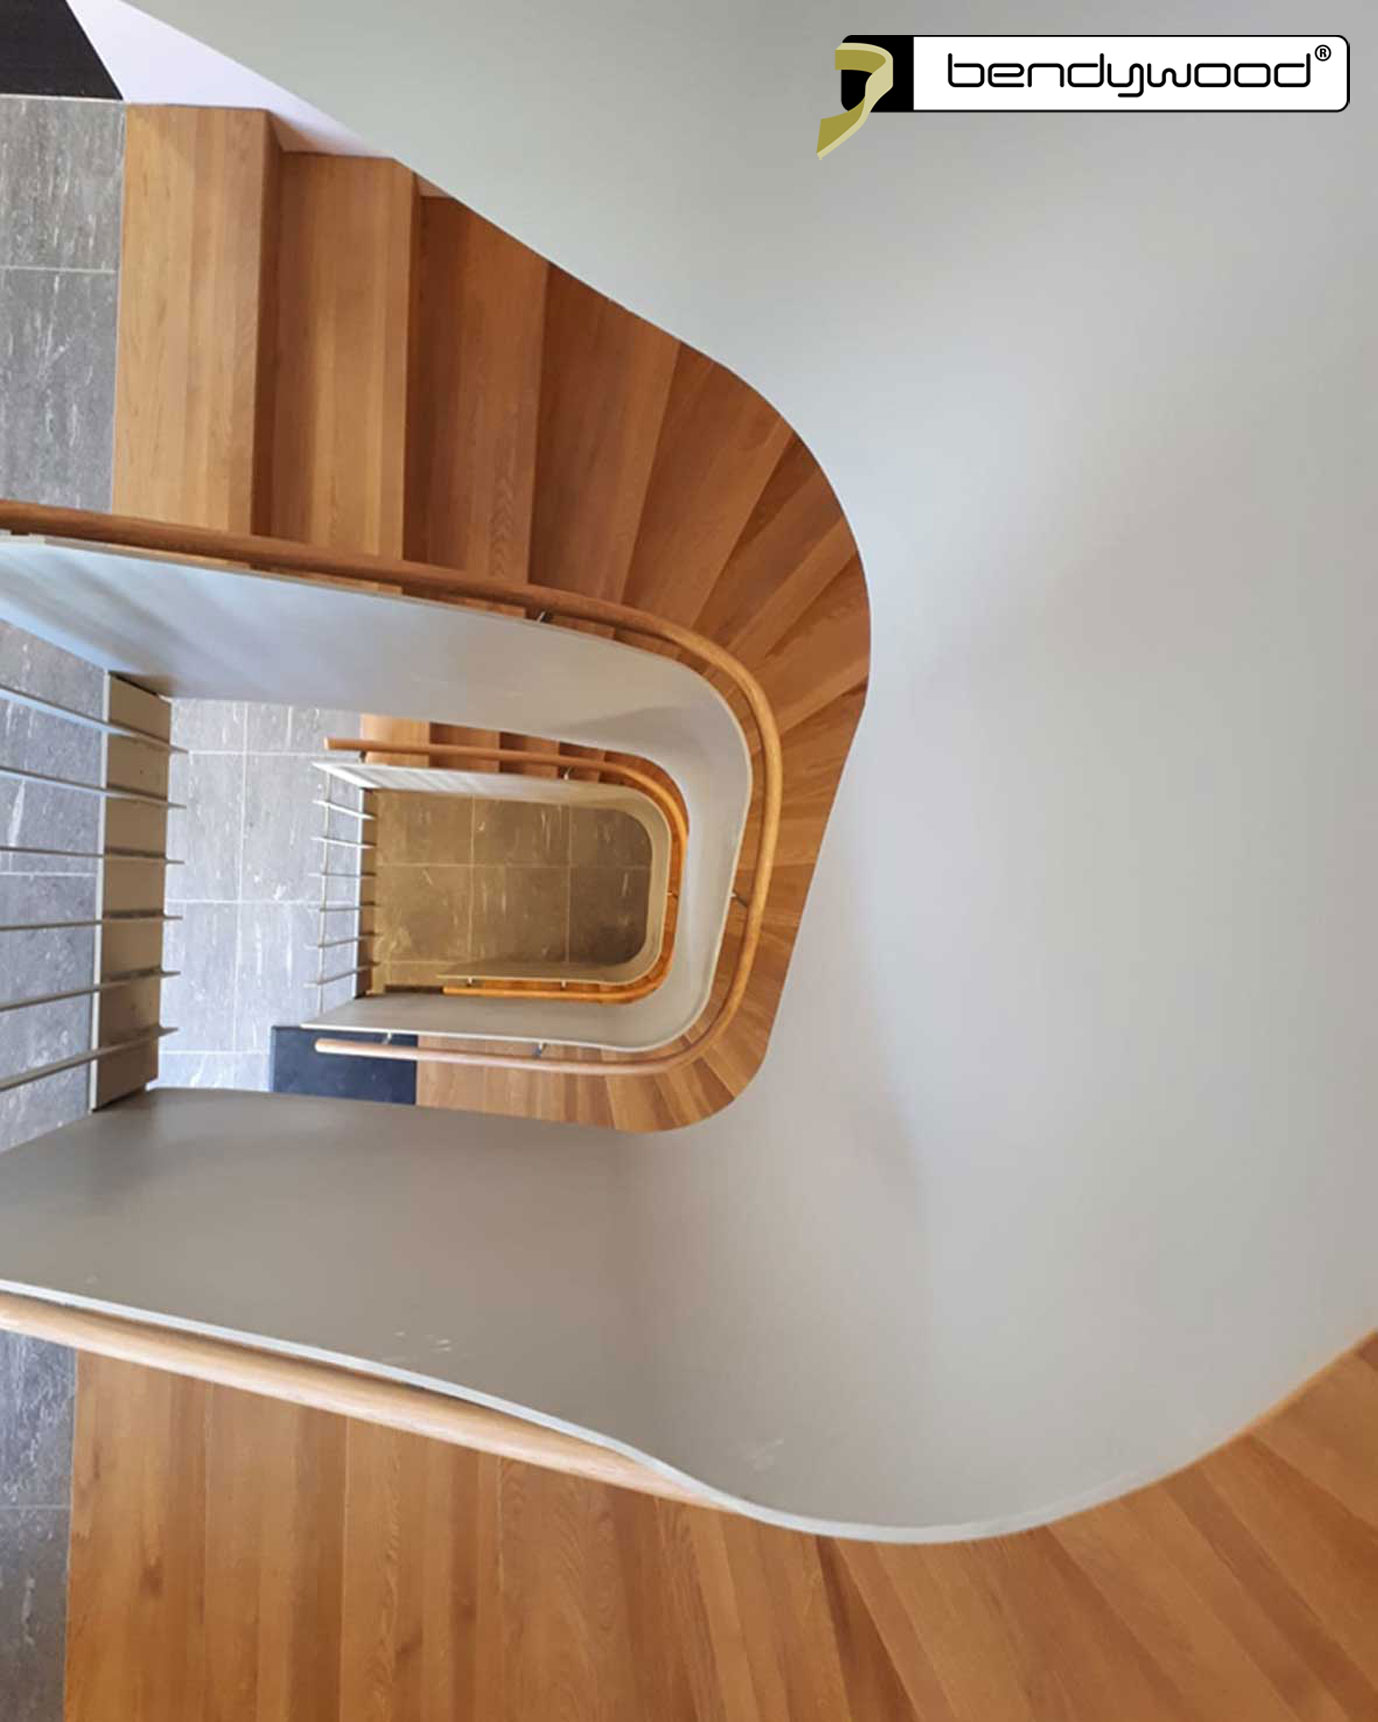 Round bending handrails in Bendywood®-oak fitted on a 10 mm thick curved steel plate stair railing.